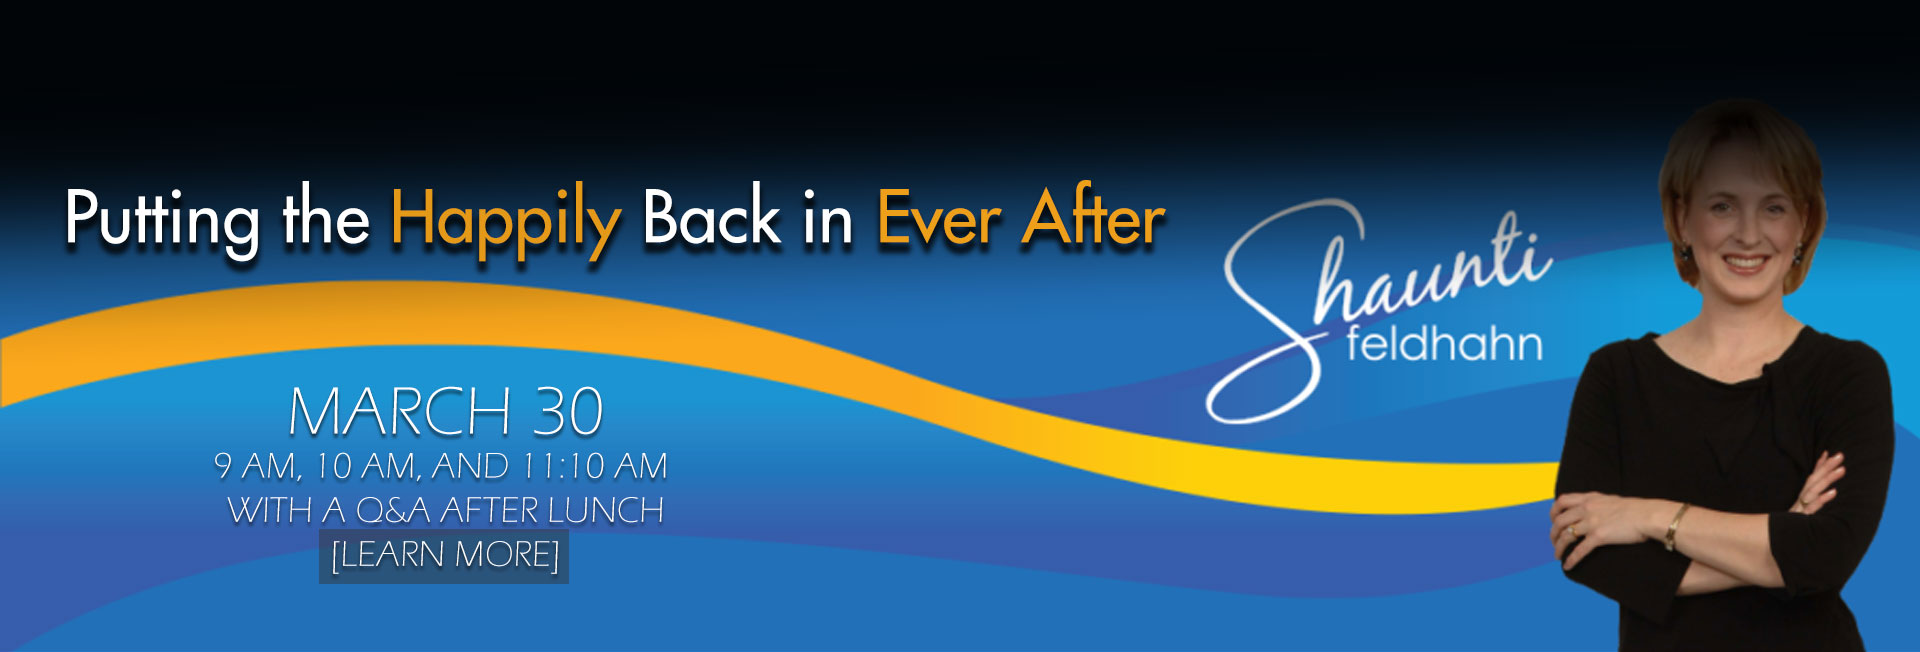 Putting the Happily Back in Ever After - March 30 -  Sabbath morning at 9 AM, 10 AM, and 11:10 AM